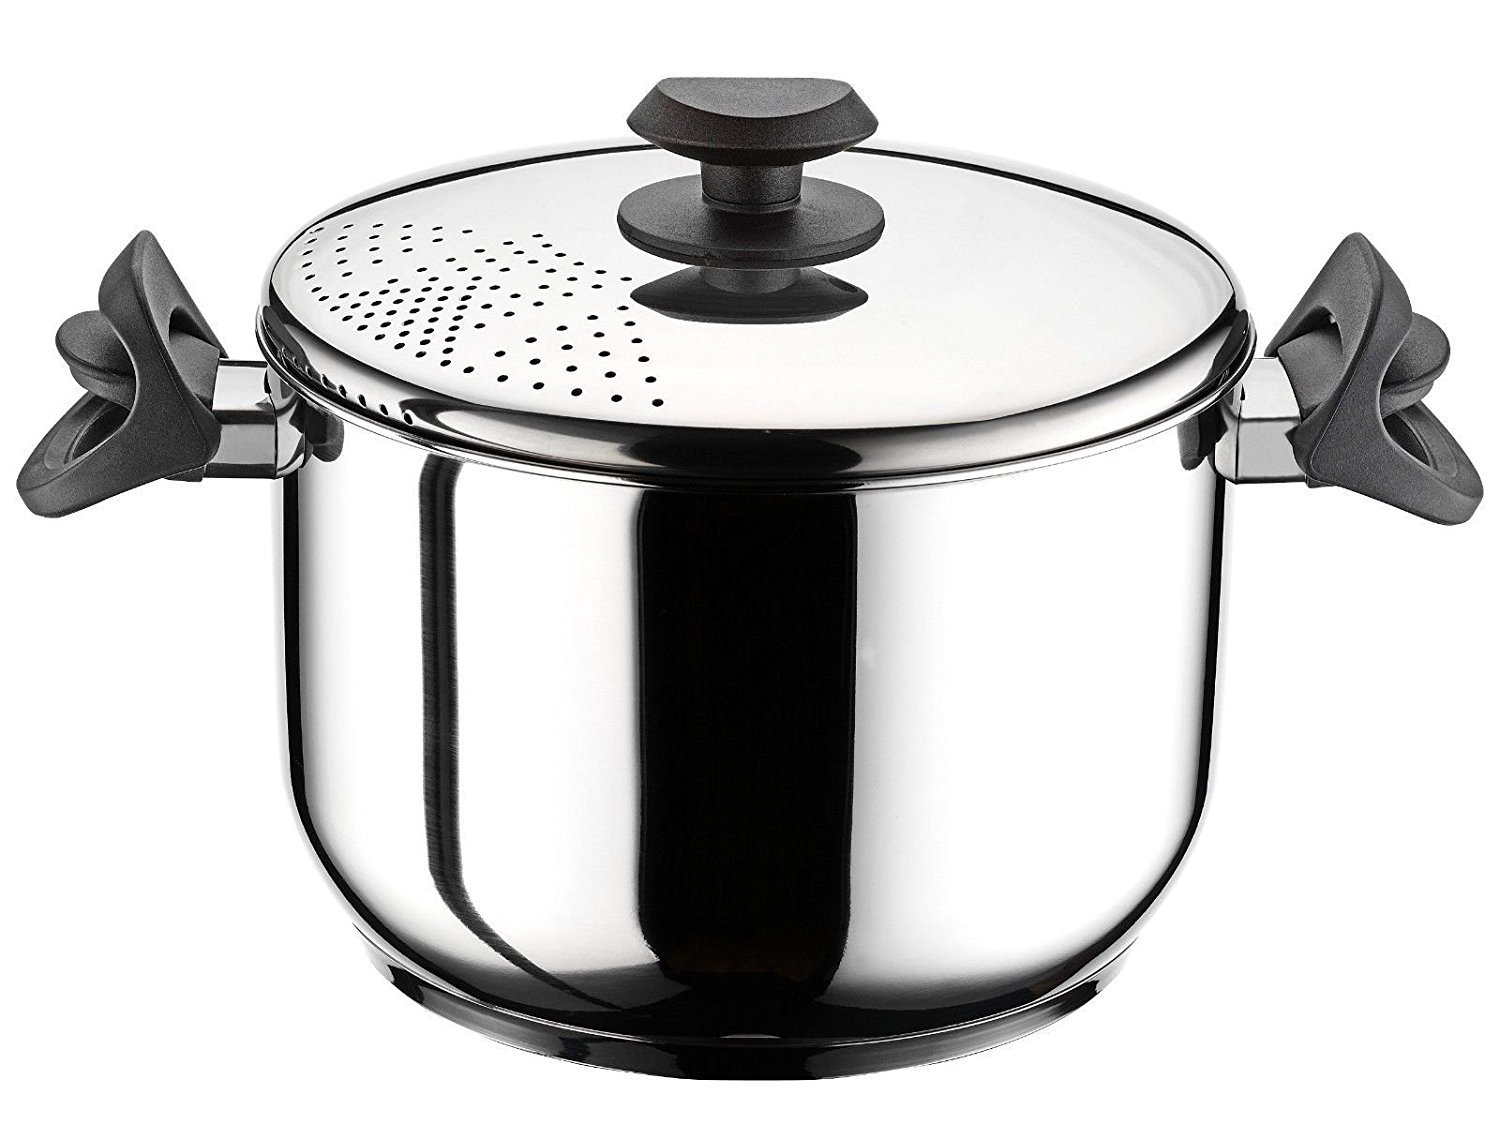 22 cm Stainless Steel Pasta Pot Spaghetti Pot with Locking Strainer Lid Induction GEEZY